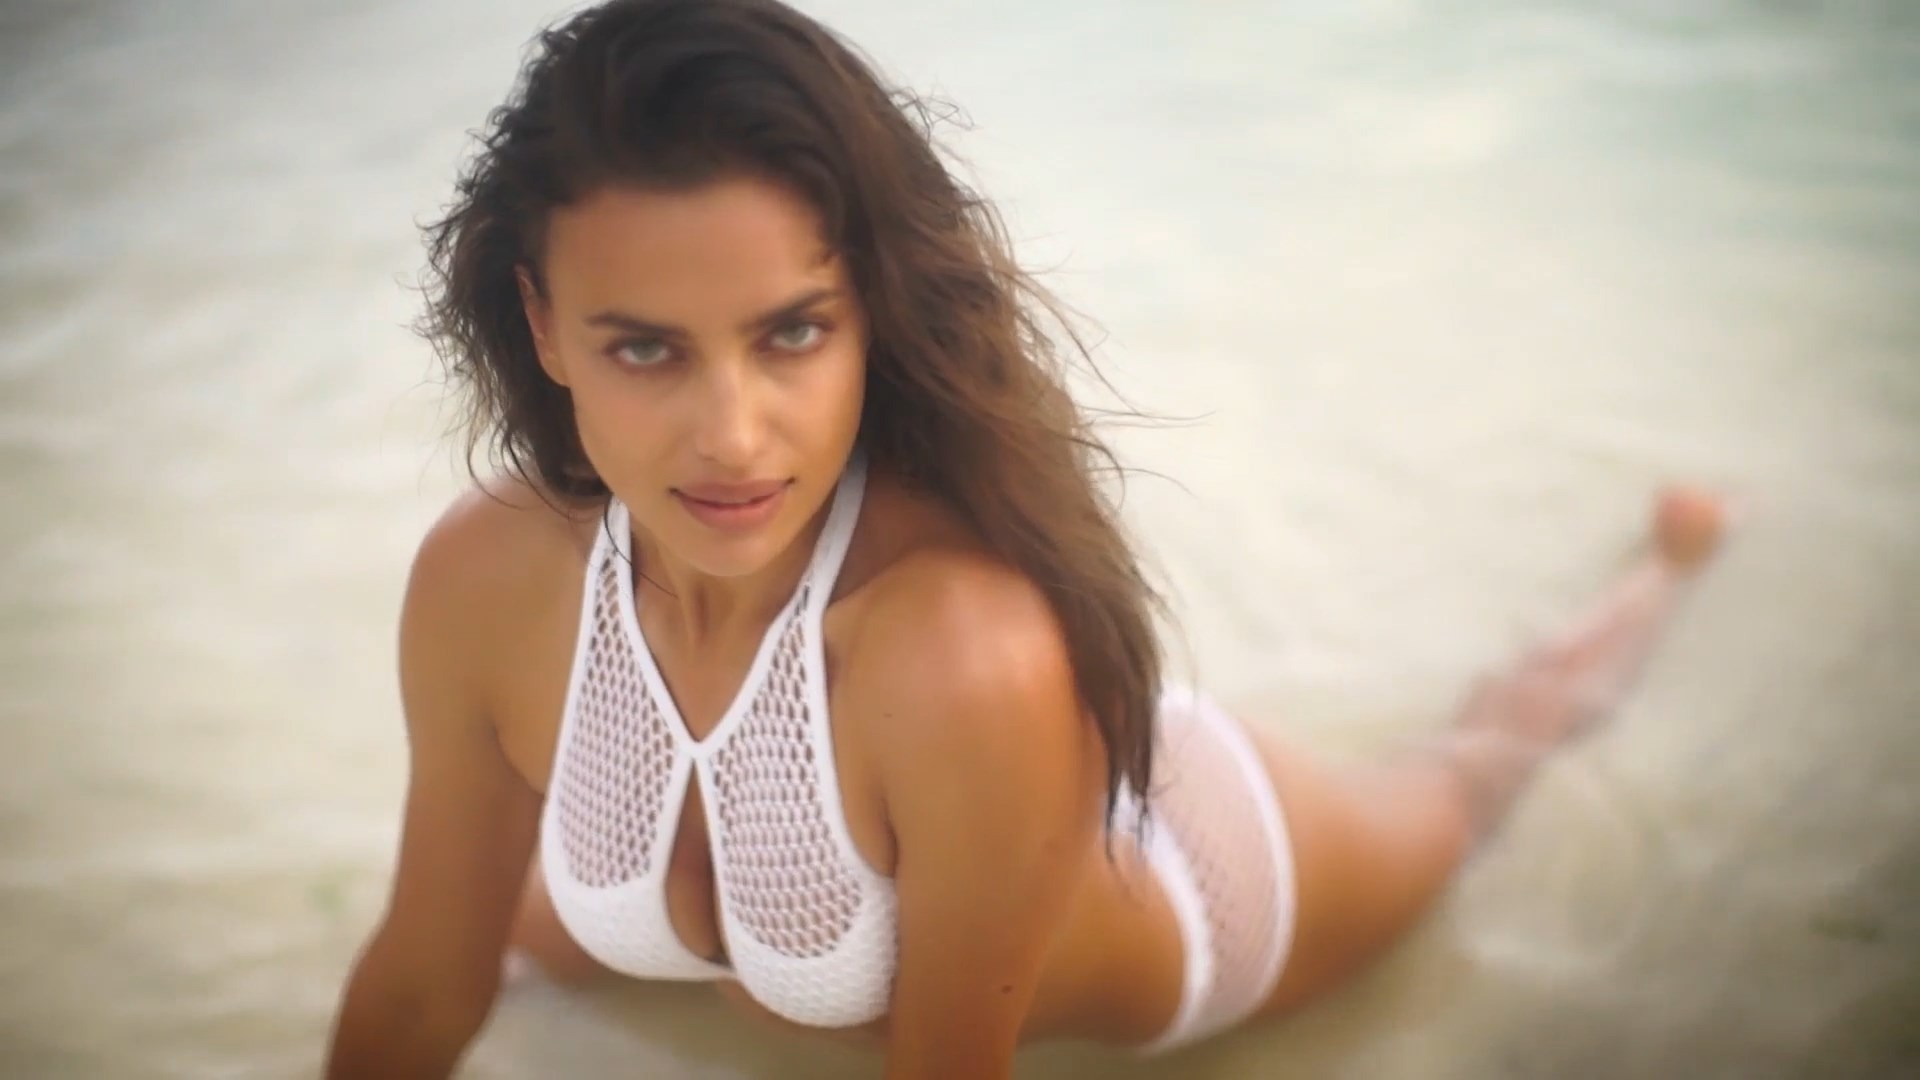 Irina Shayk nude photos